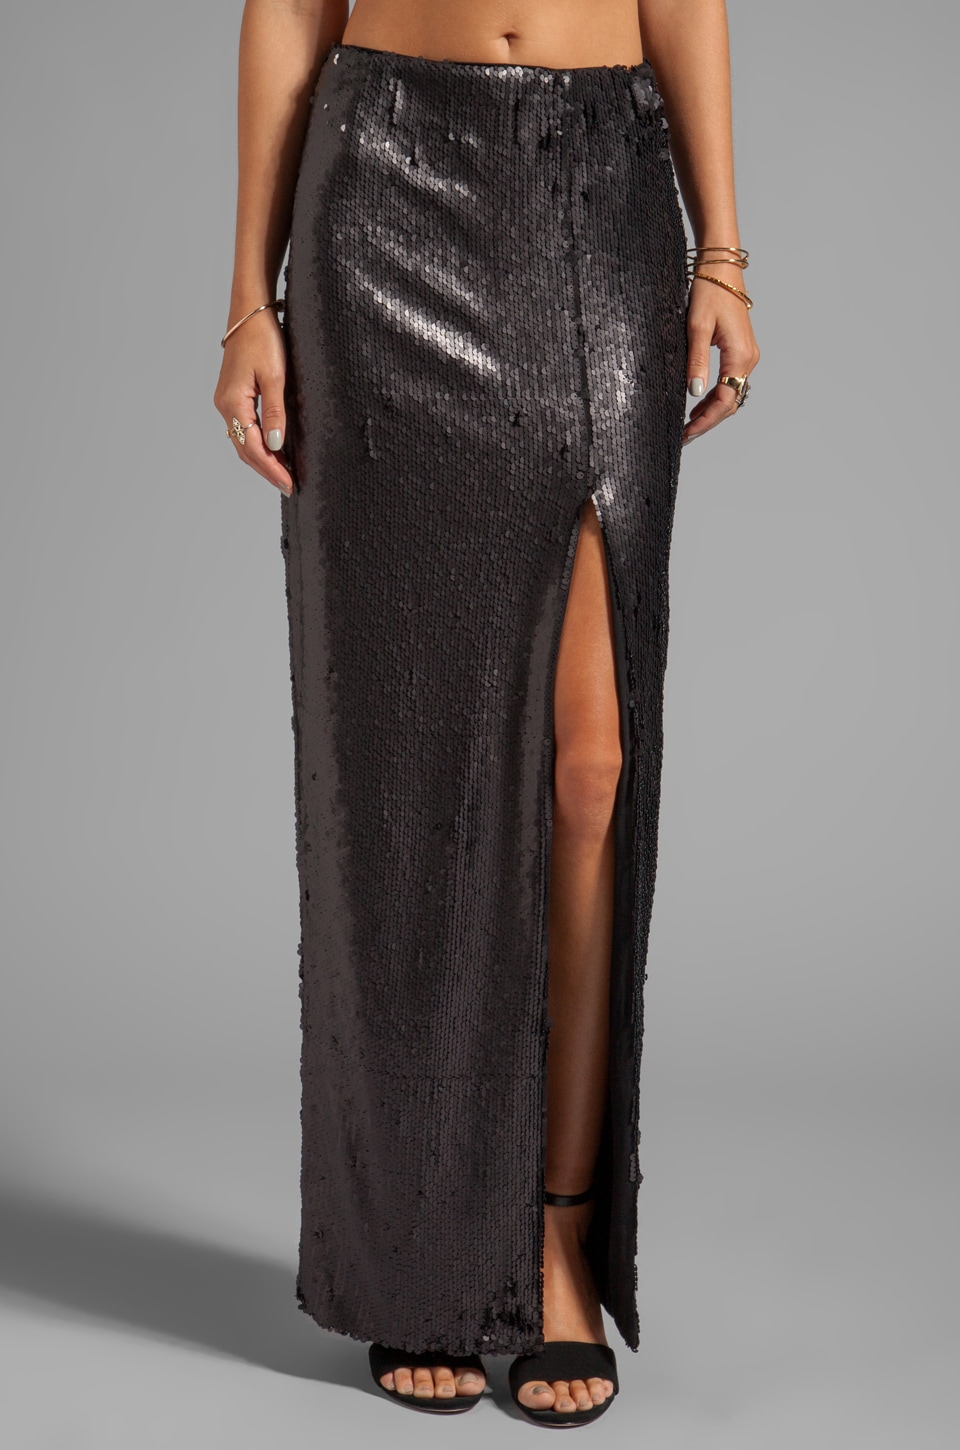 BLAQUE LABEL Sequins High Slit Maxi Skirt in Matte Black